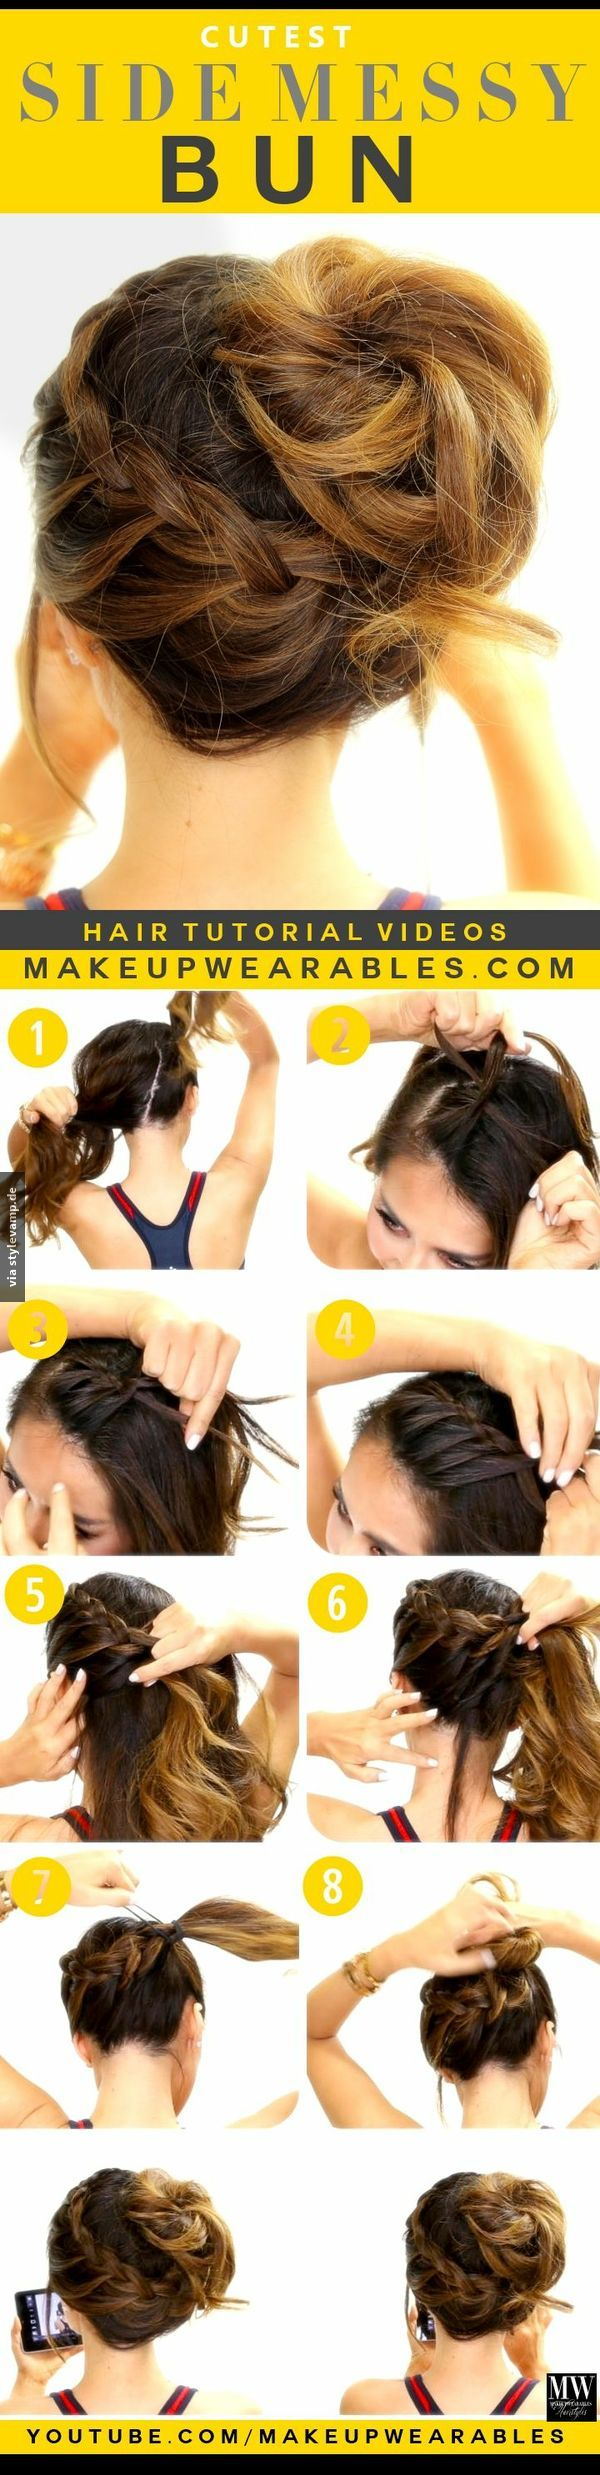 best beauty images on pinterest beauty tips hair ideas and